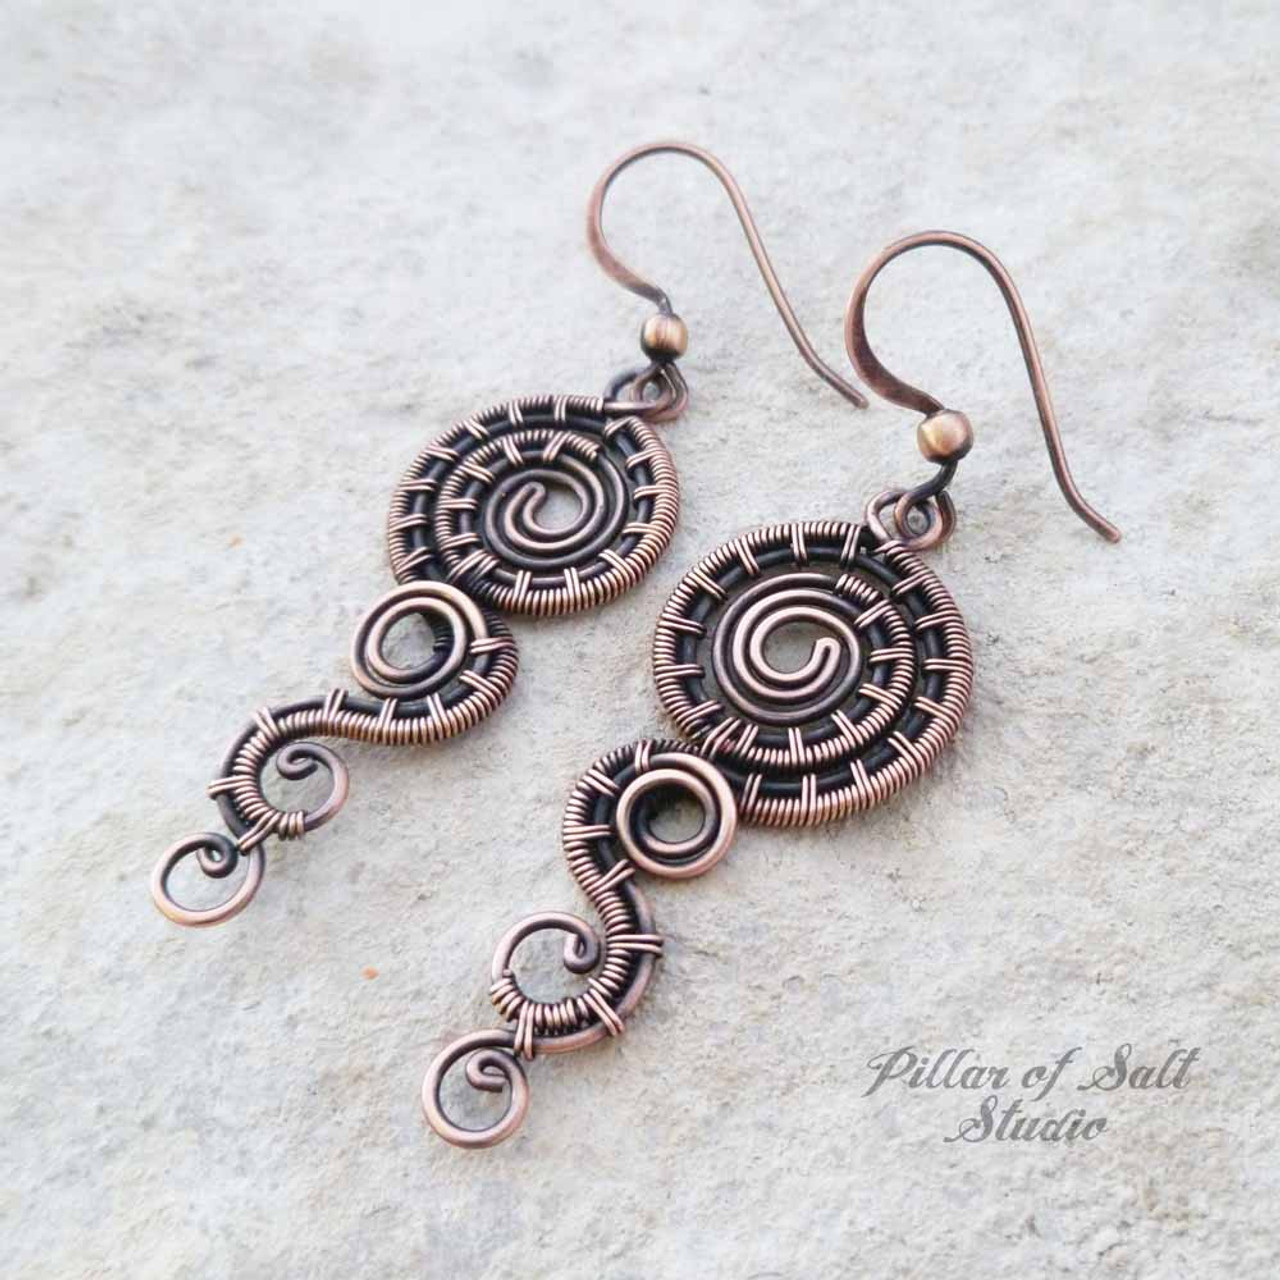 Dripping Spiral Copper wire wrapped earrings - Pillar of Salt ...